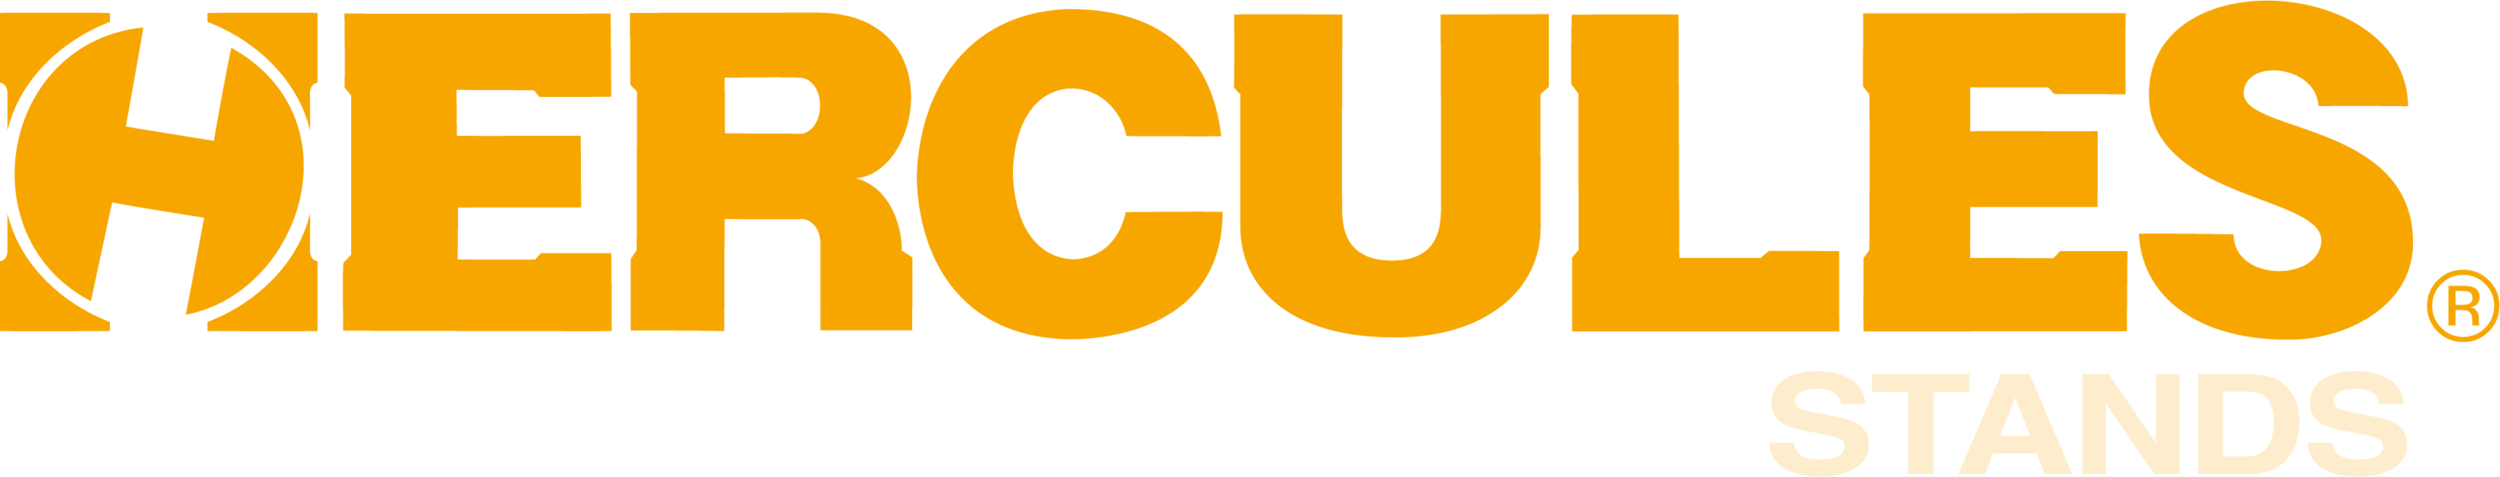 Logo_Hercules_orange.png